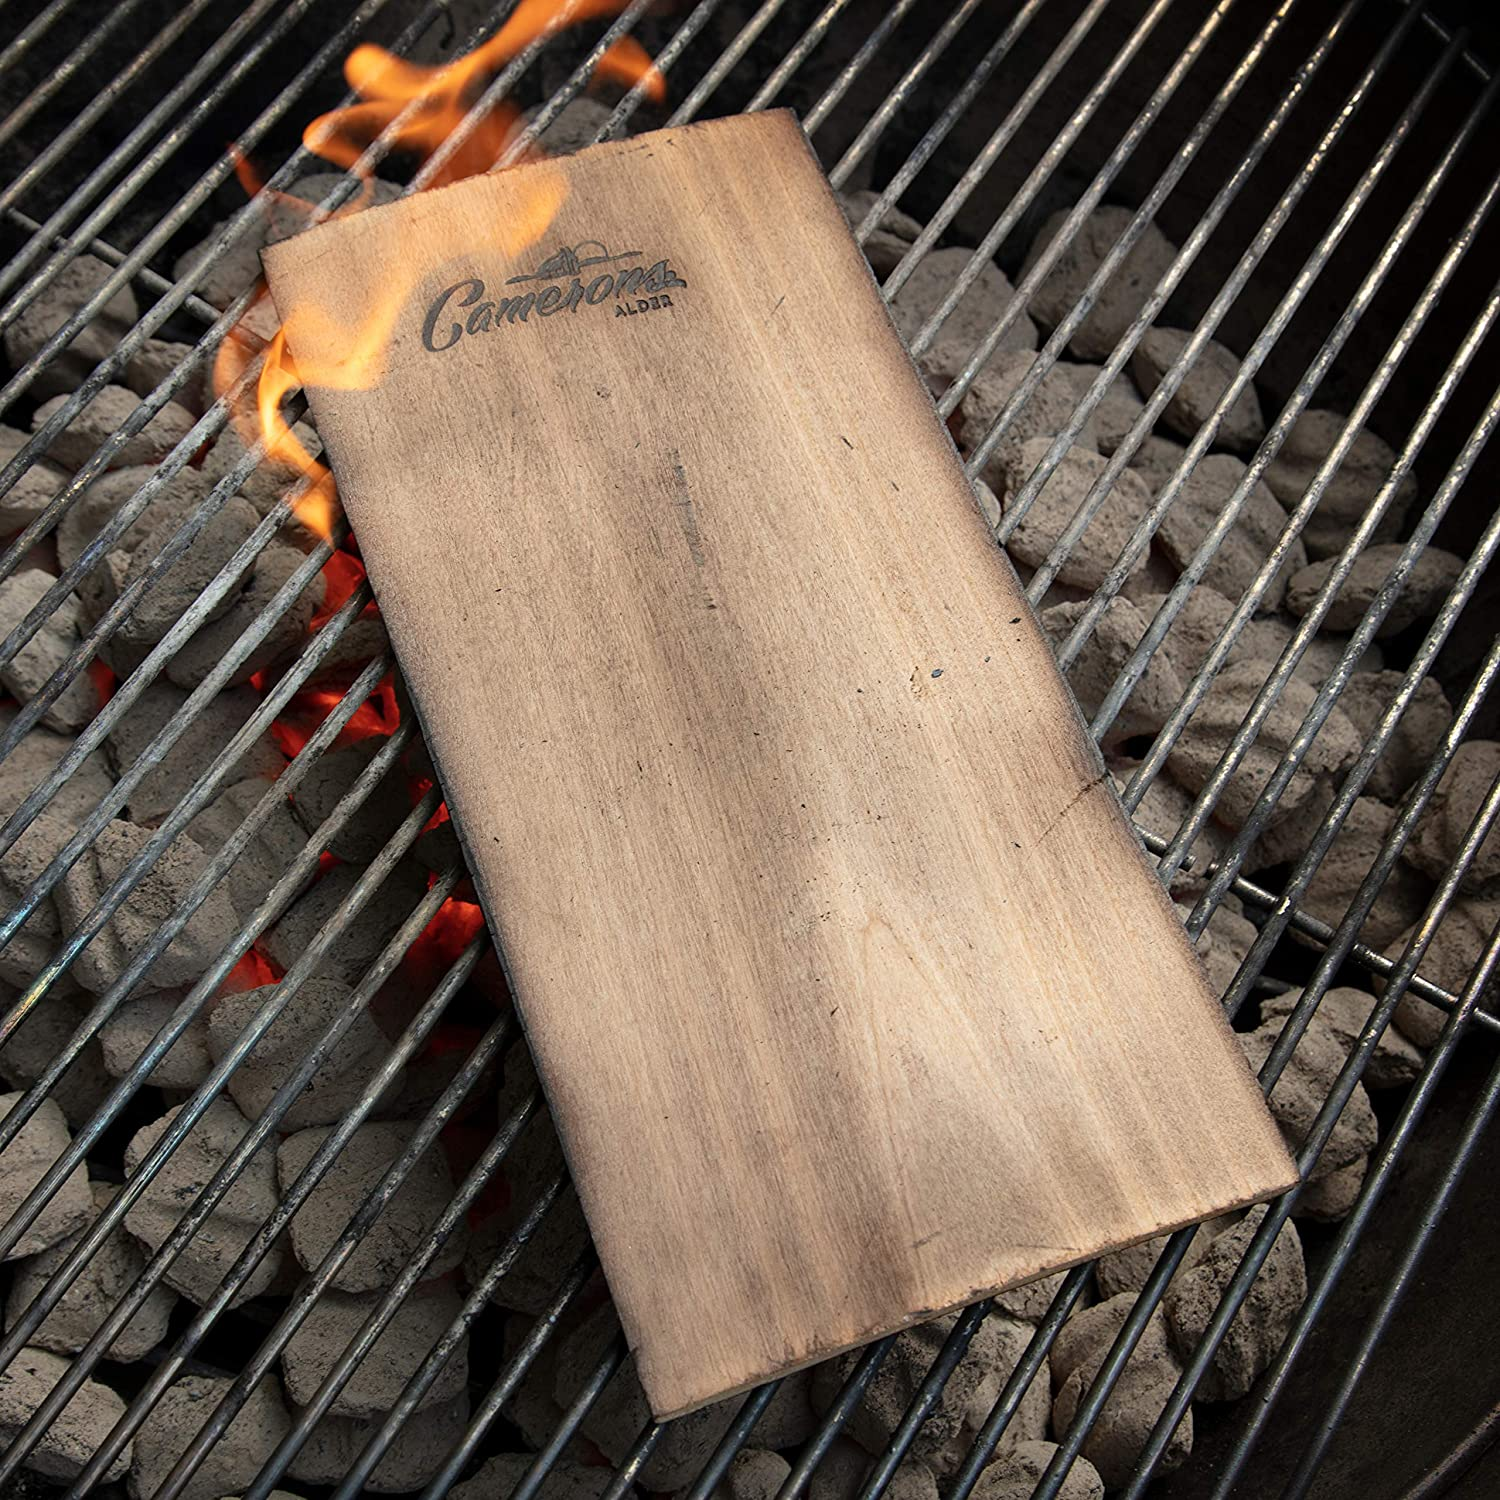 Premium Cedar Planks For Grilling | Thicker Design For Moister /& More Flavorful Salmon, Steaks, Seafood /& More | More Uses Per Cedar Plank | FREE Recipe Card | Just Soak, Grill /& Serve | 5 Pack Primal Grilling Inc.